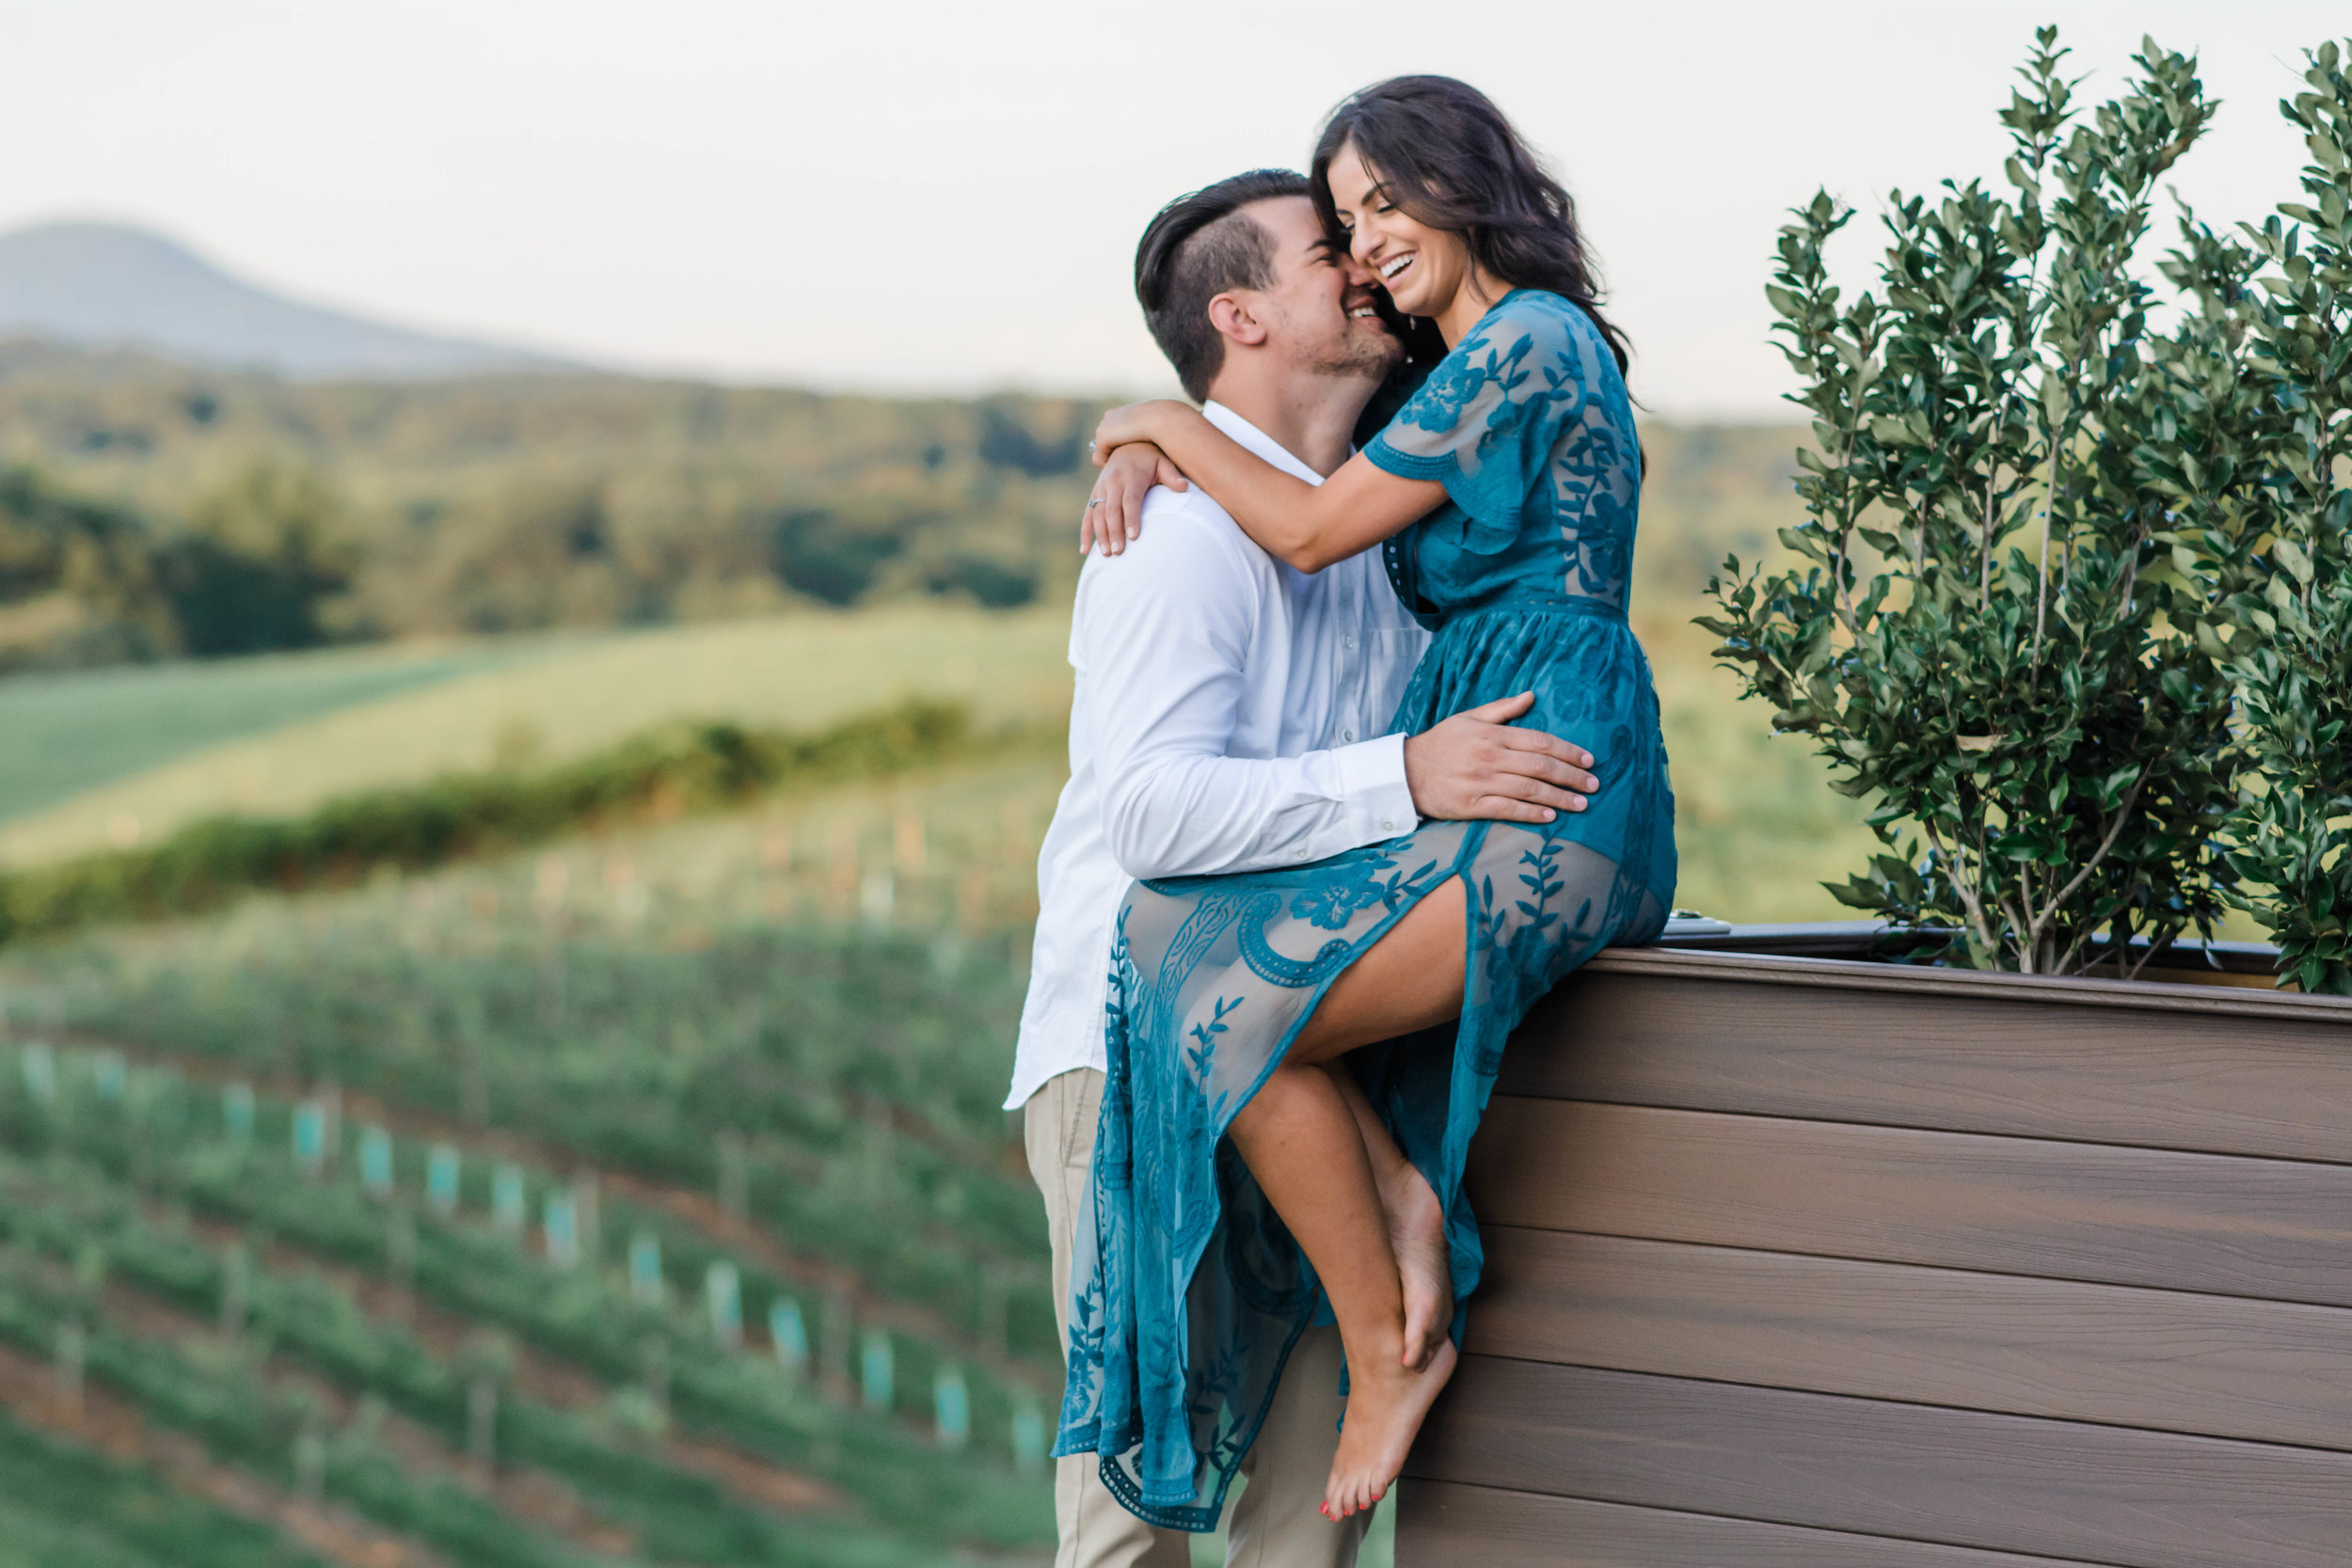 engagements - Photography almost as magical as your love story!